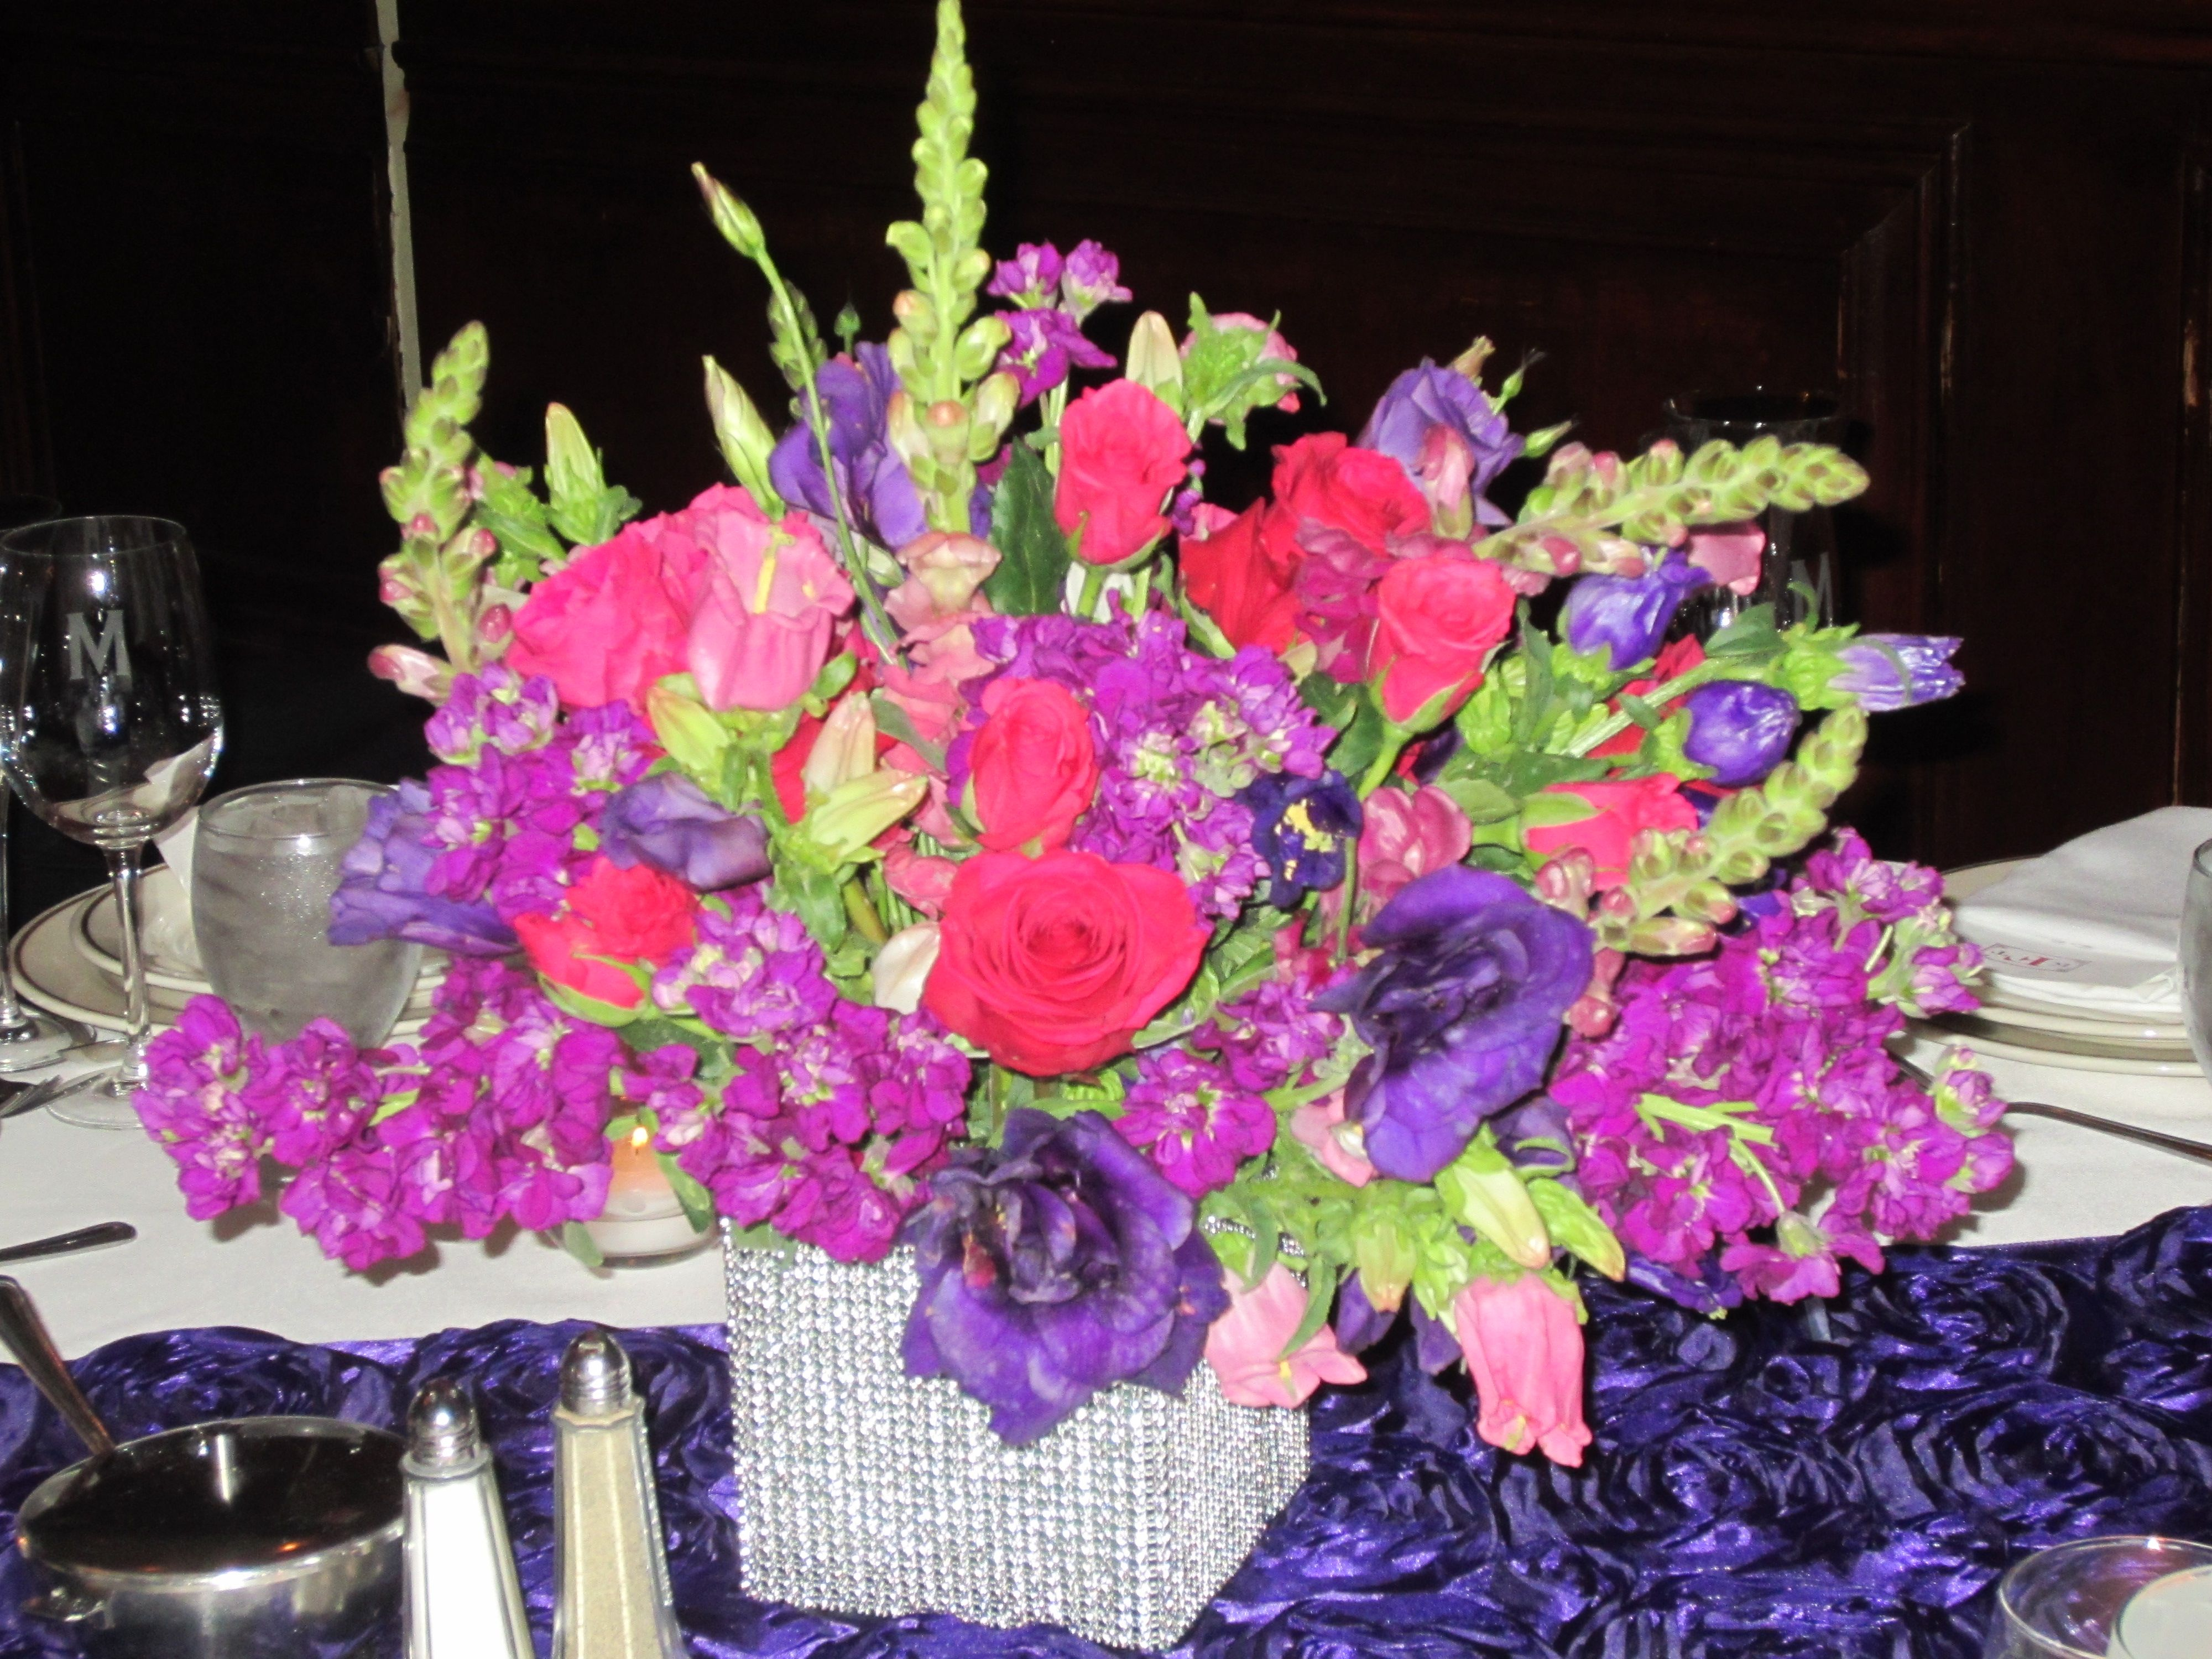 June Wedding Center Piece: Having short & tall arrangements gives a room depth & creates highs and lows for the eye.